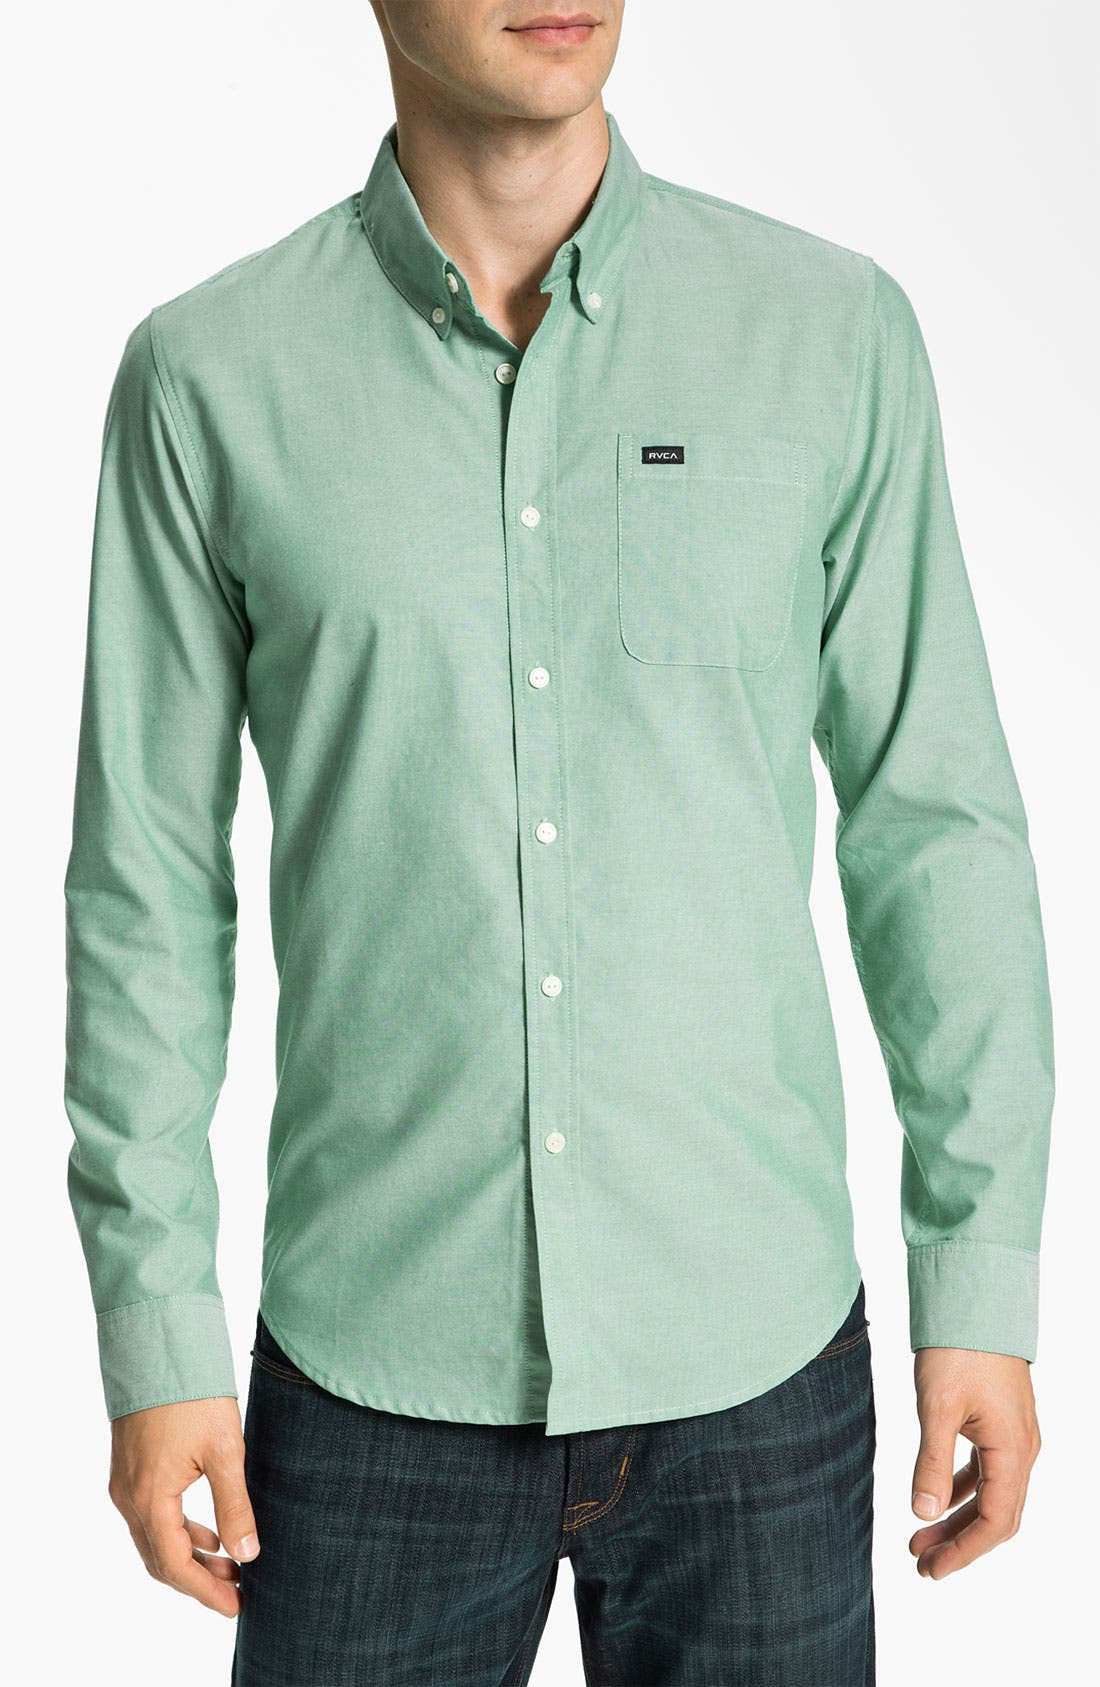 Alternate Image 1 Selected - RVCA 'That'll Do' Oxford Shirt